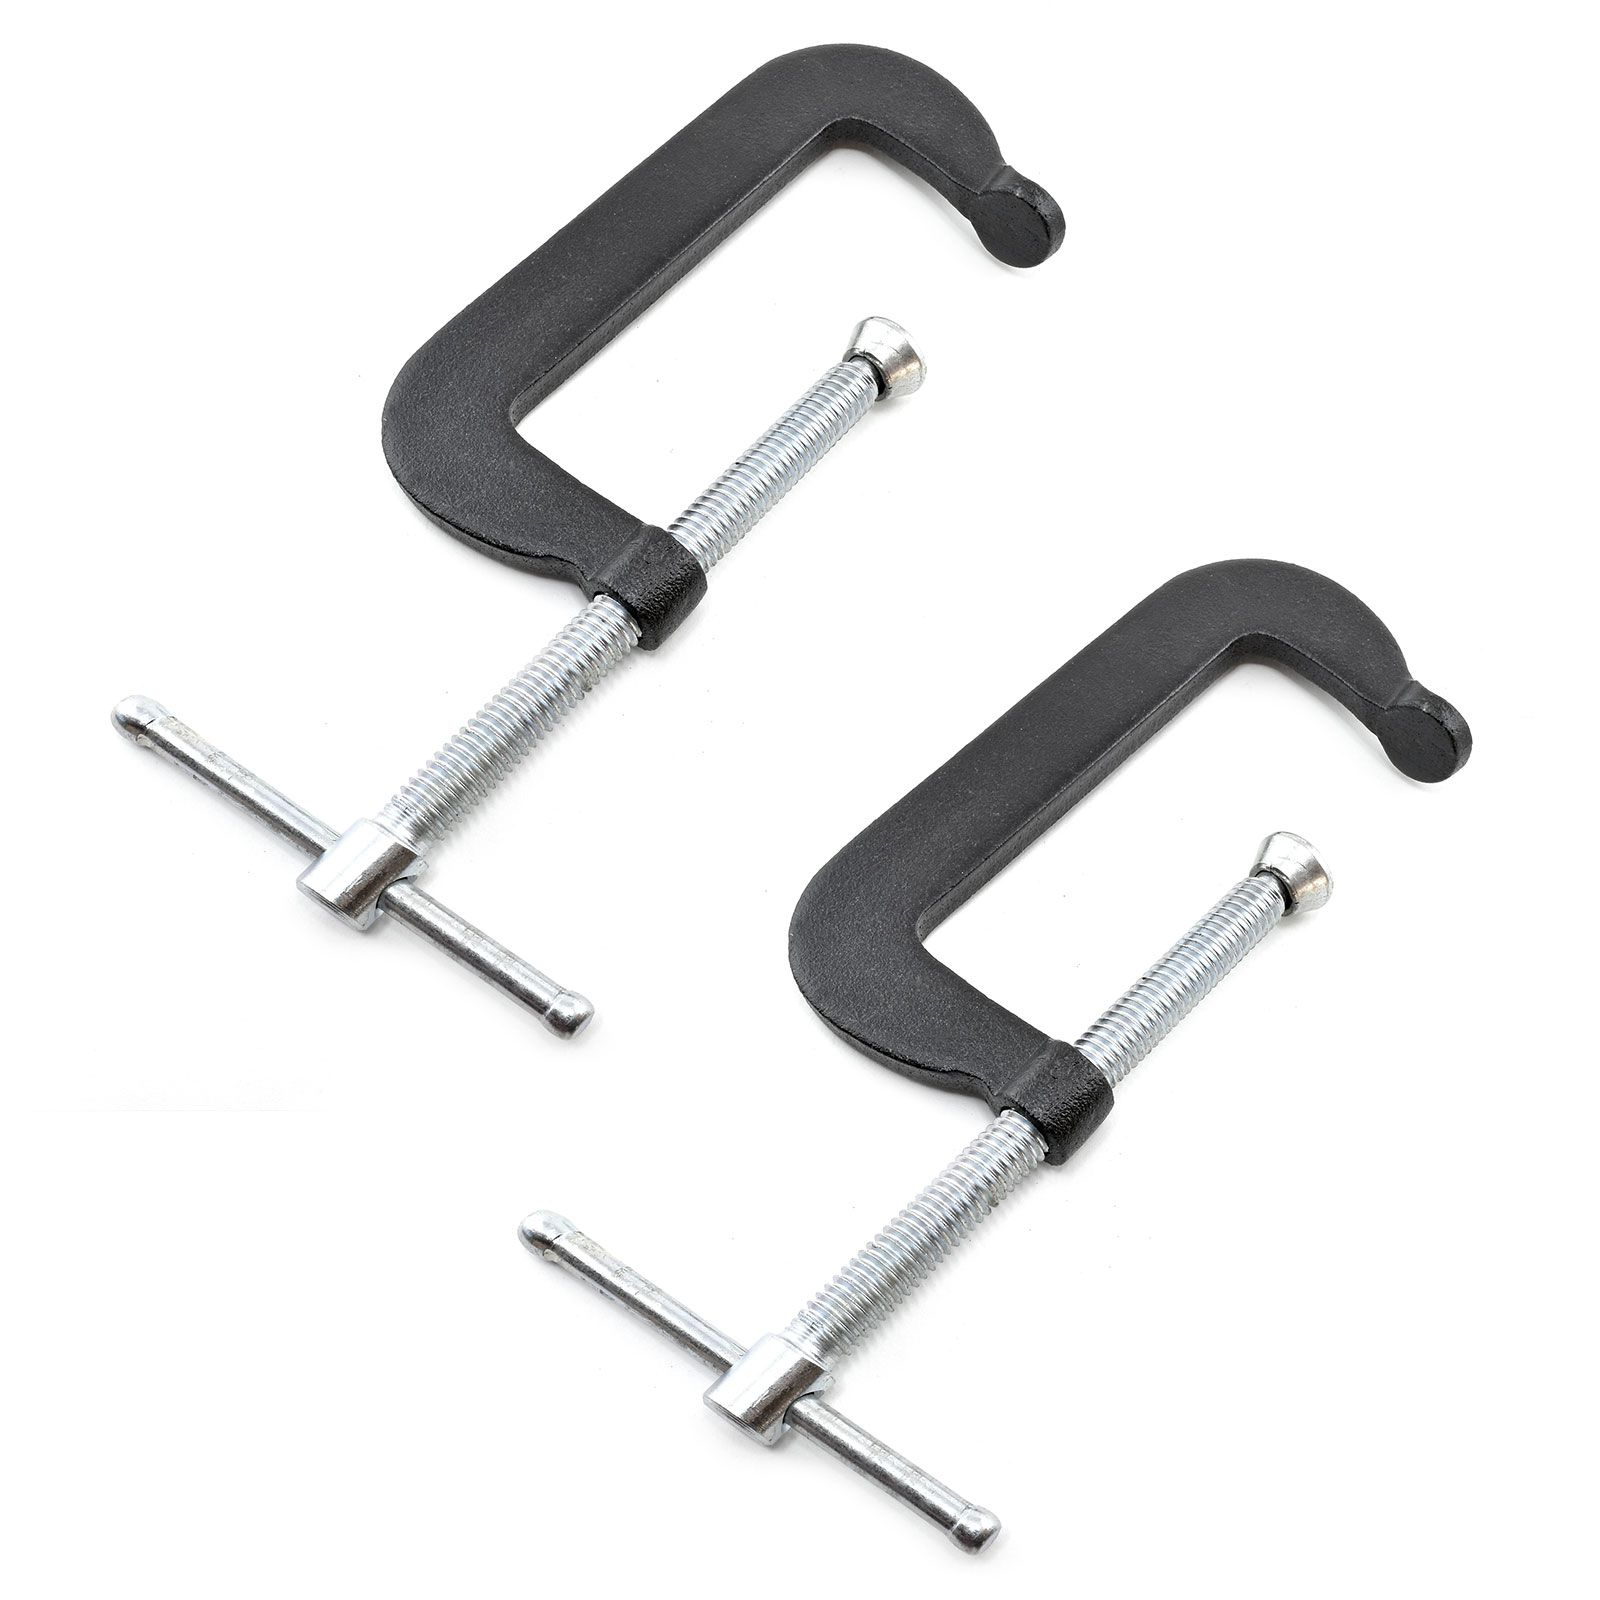 Perfect for small arts and craft projects work place industrial applications and more 1 inch c-clamps pack of 2 hobbyist model builder